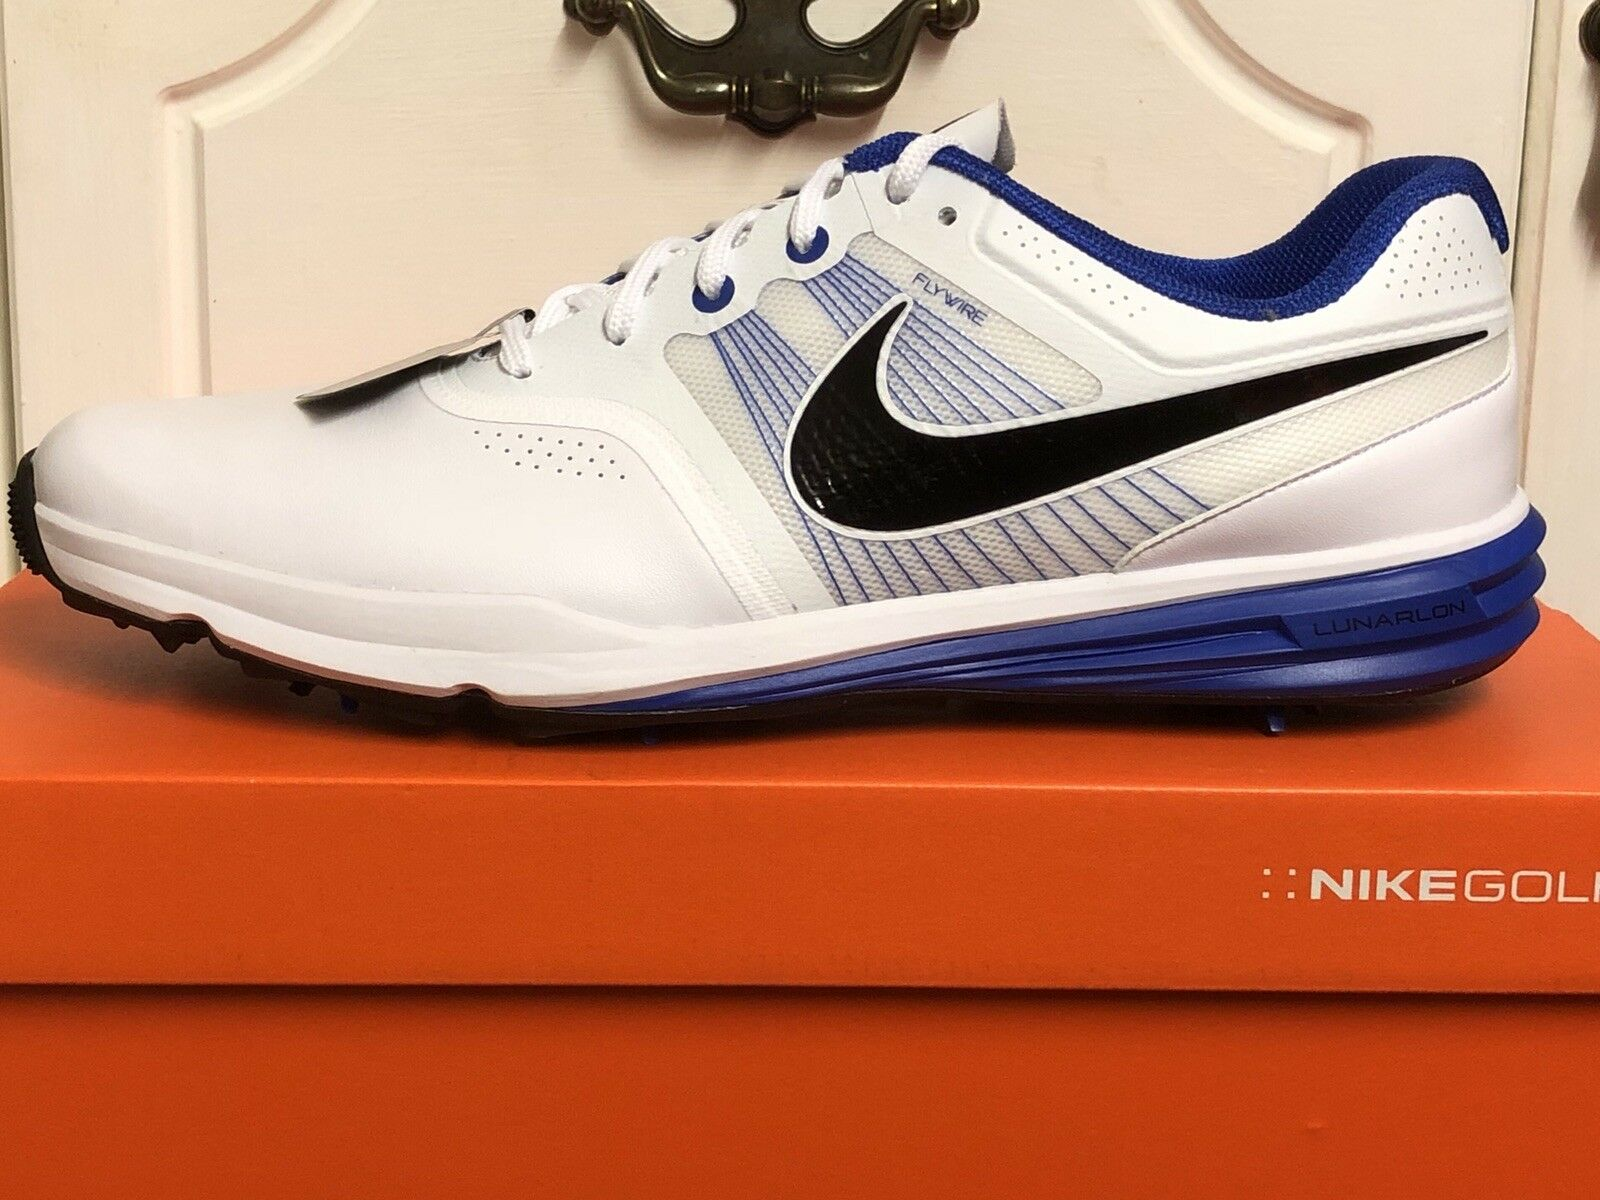 NIKE LUNAR COMMAND MENS TRAINERS SNEAKERS GOLF SHOES US 13